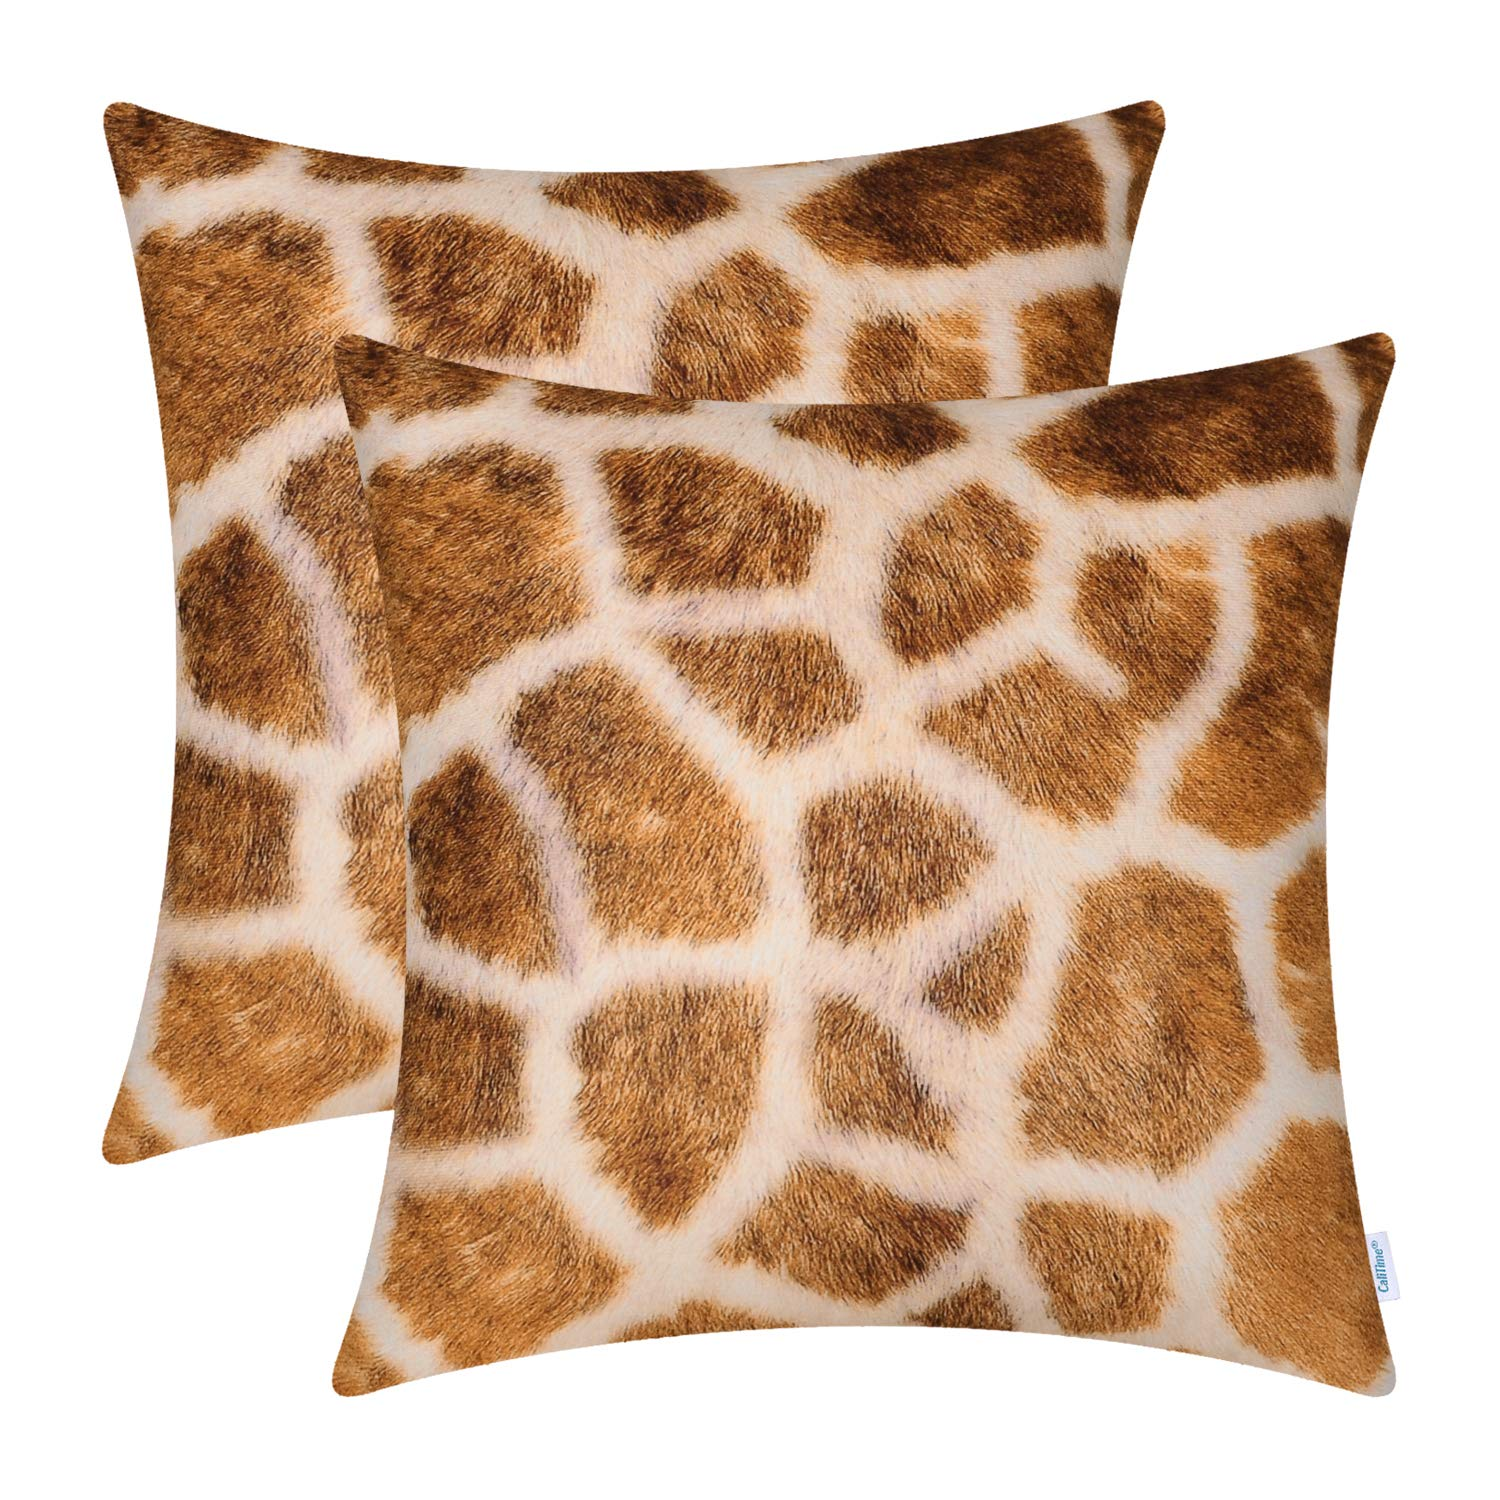 CaliTime Pack of 2 Cozy Fleece Throw Pillow Cases Covers for Couch Bed Sofa Animal Skin Pattern Printed Both Sides 18 X 18 inches Giraffe